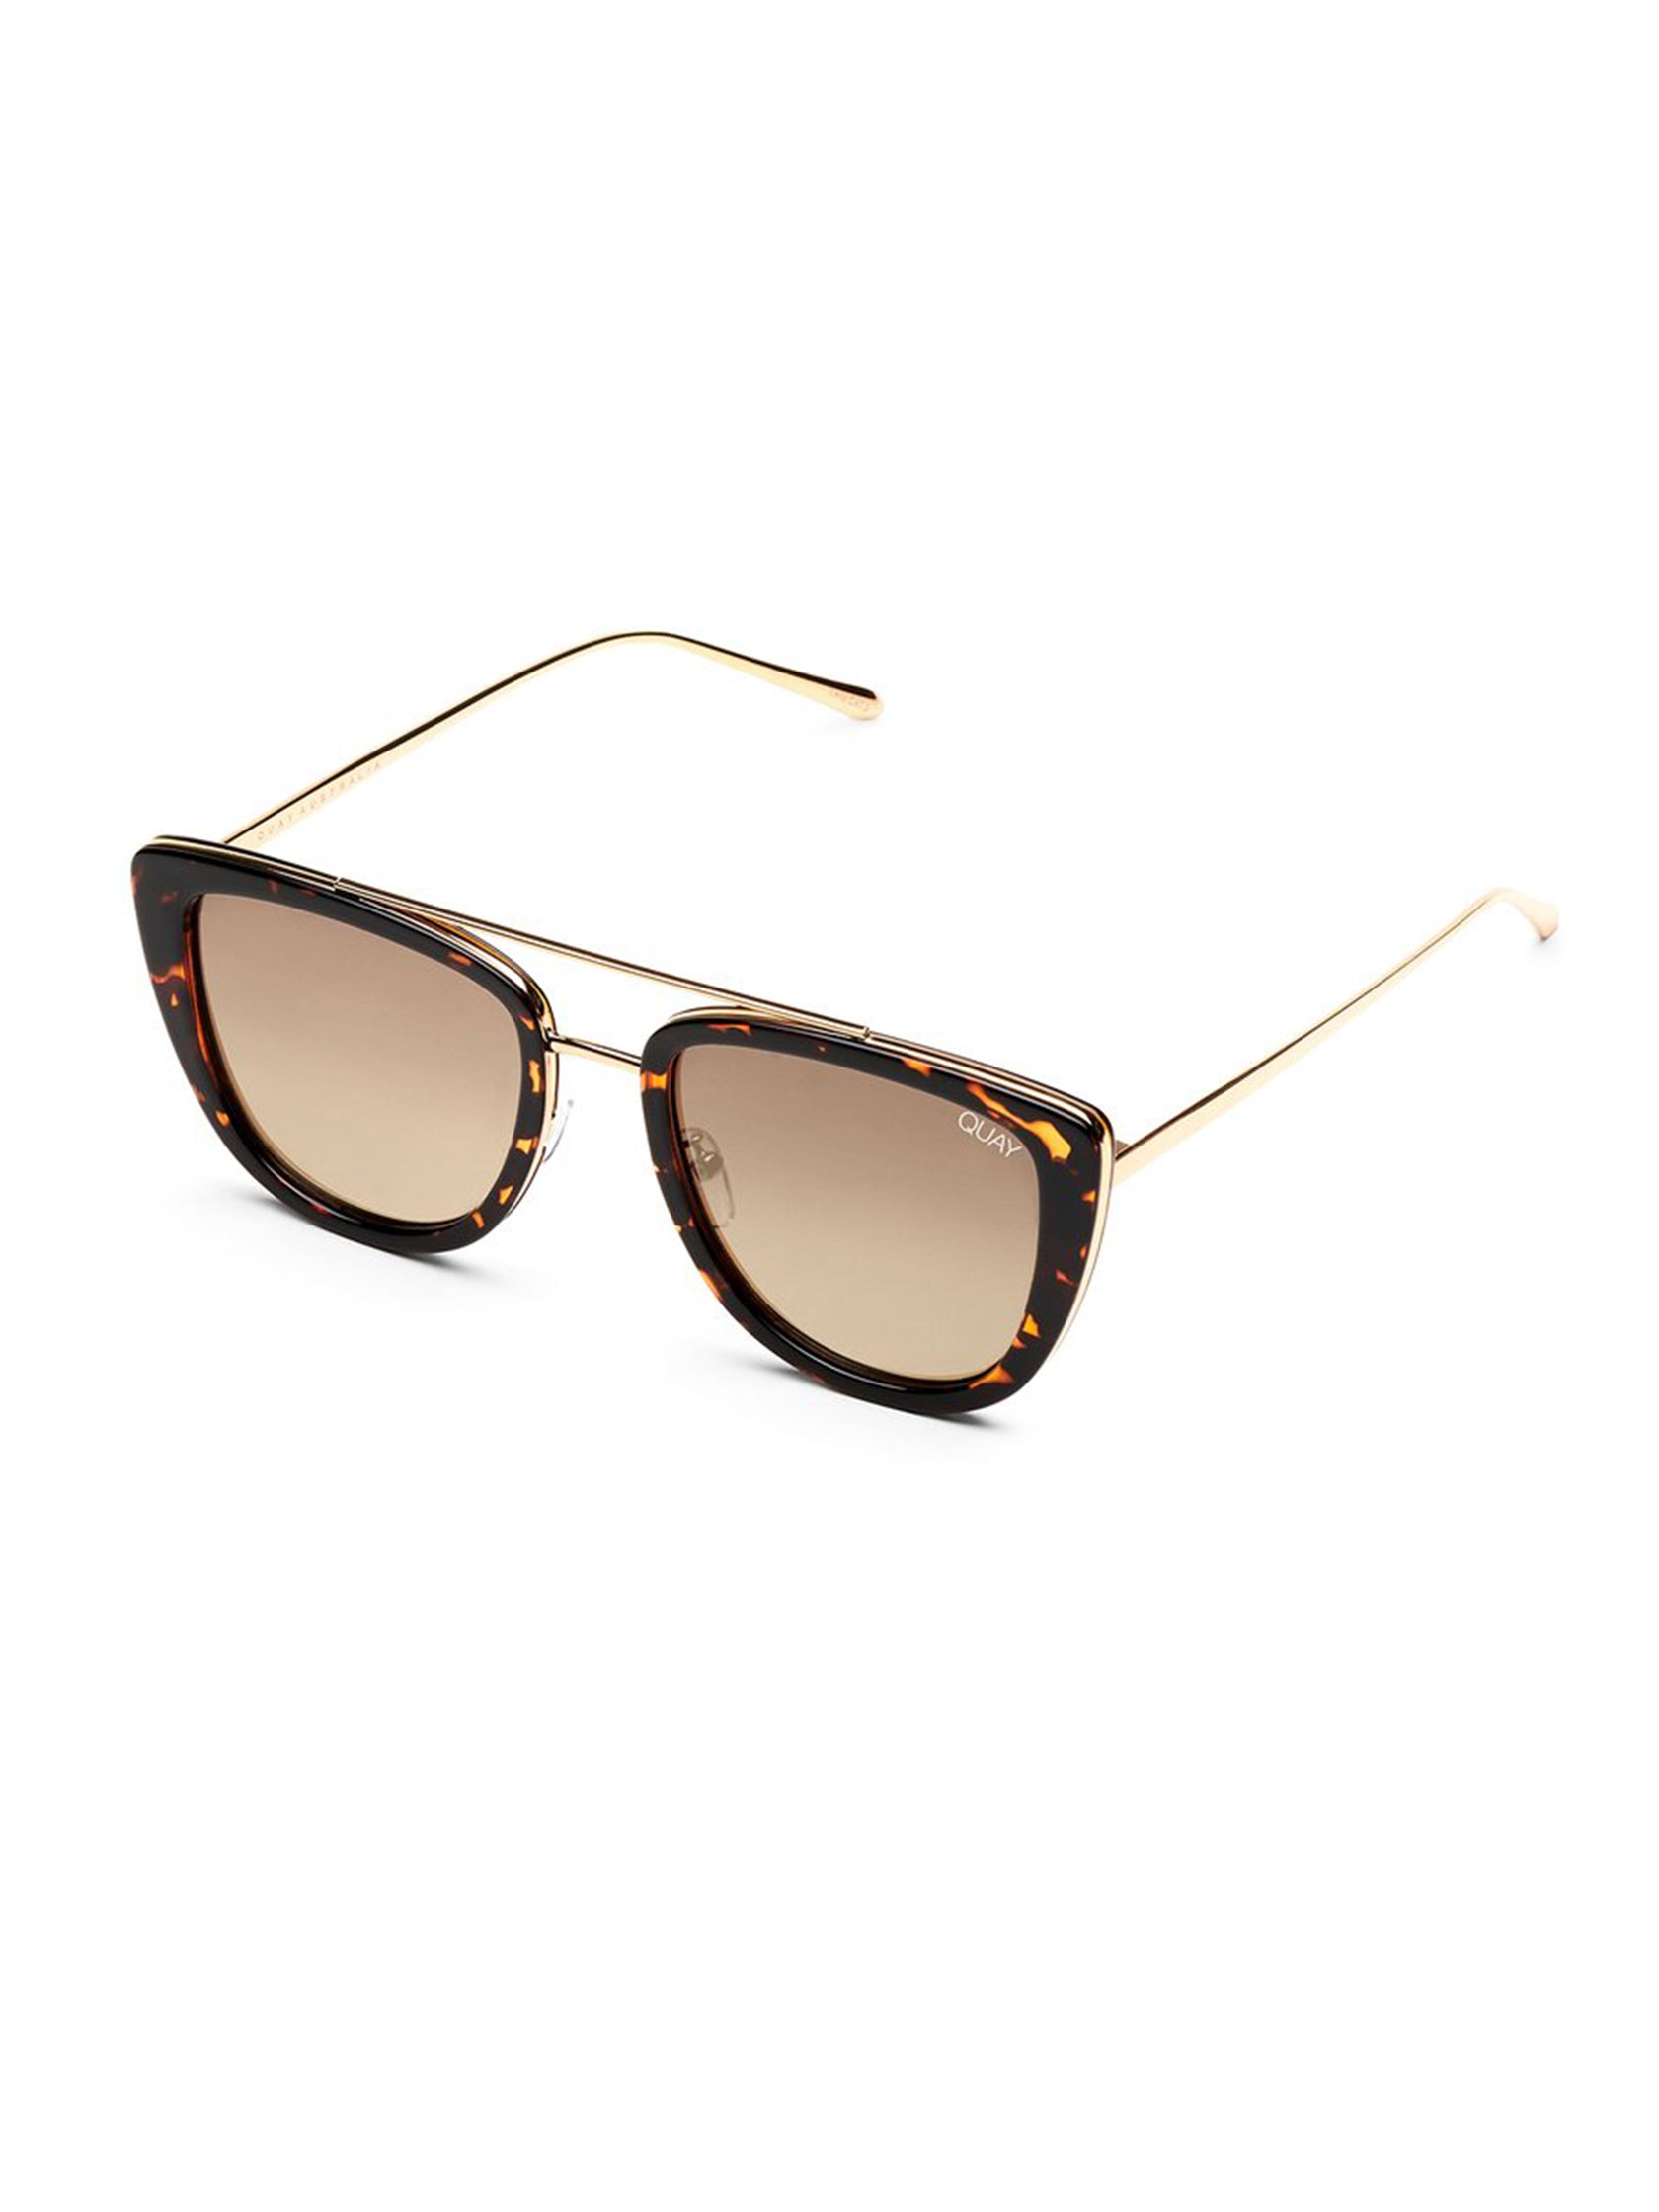 Woman wearing a sunglasses rental from Quay Australia called French Kiss Sunglasses